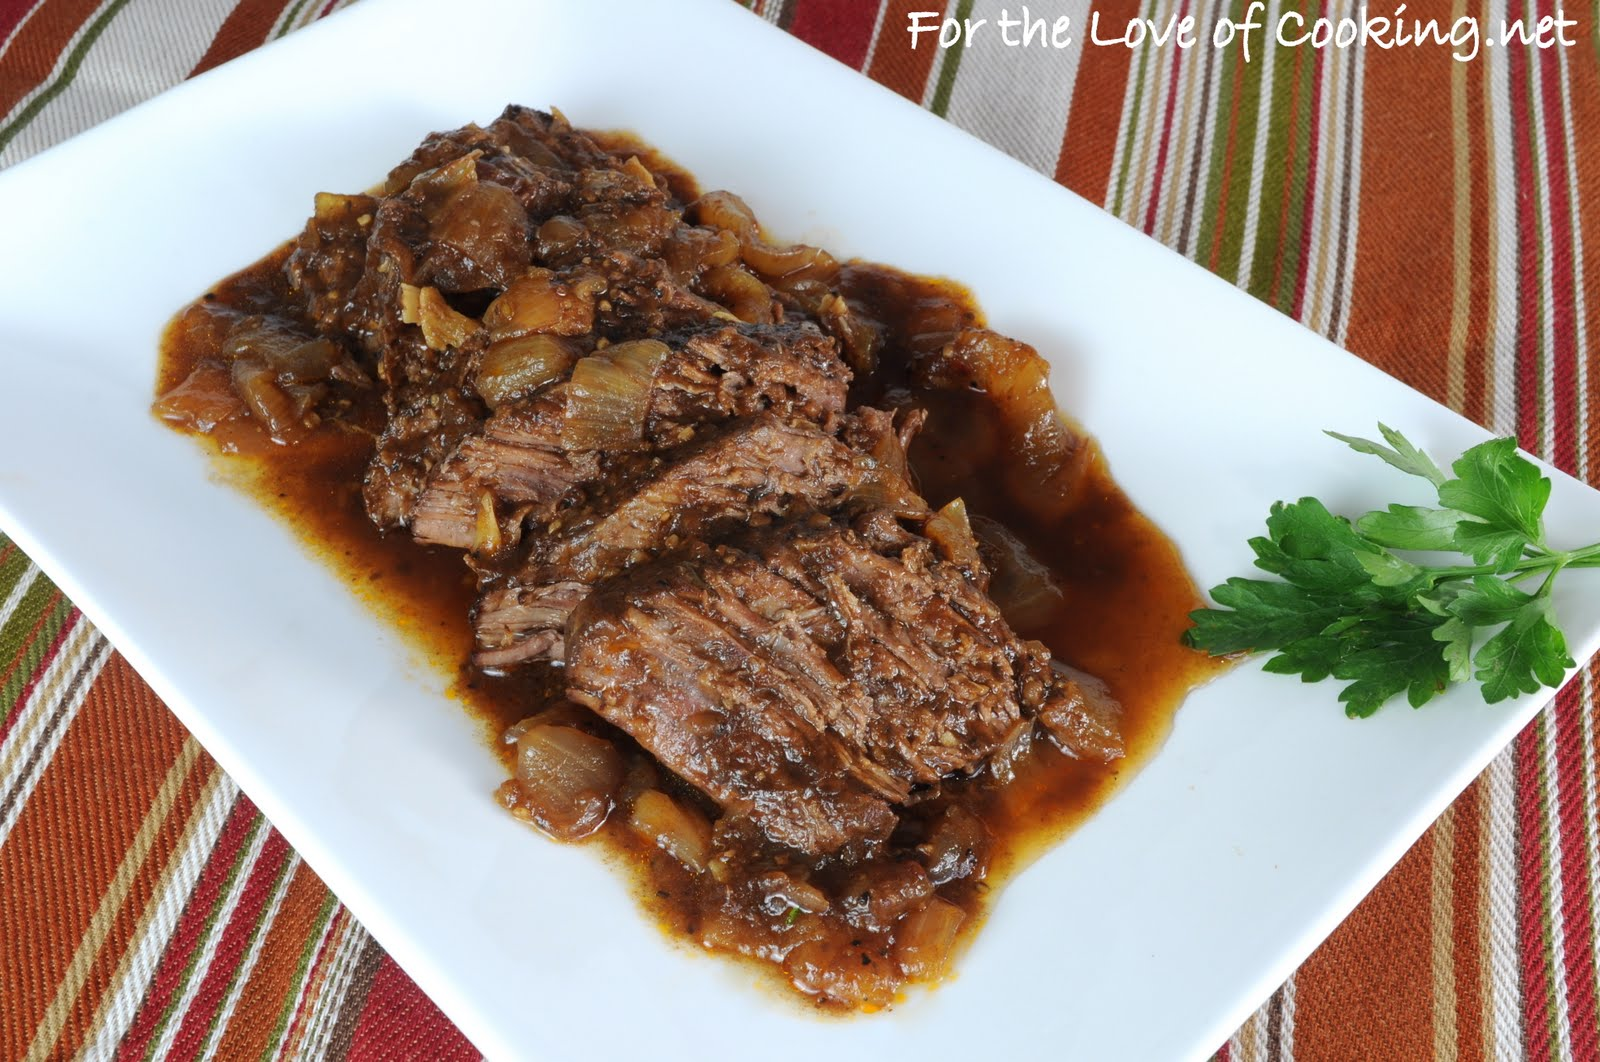 Balsamic and Onion Pot Roast | For the Love of Cooking